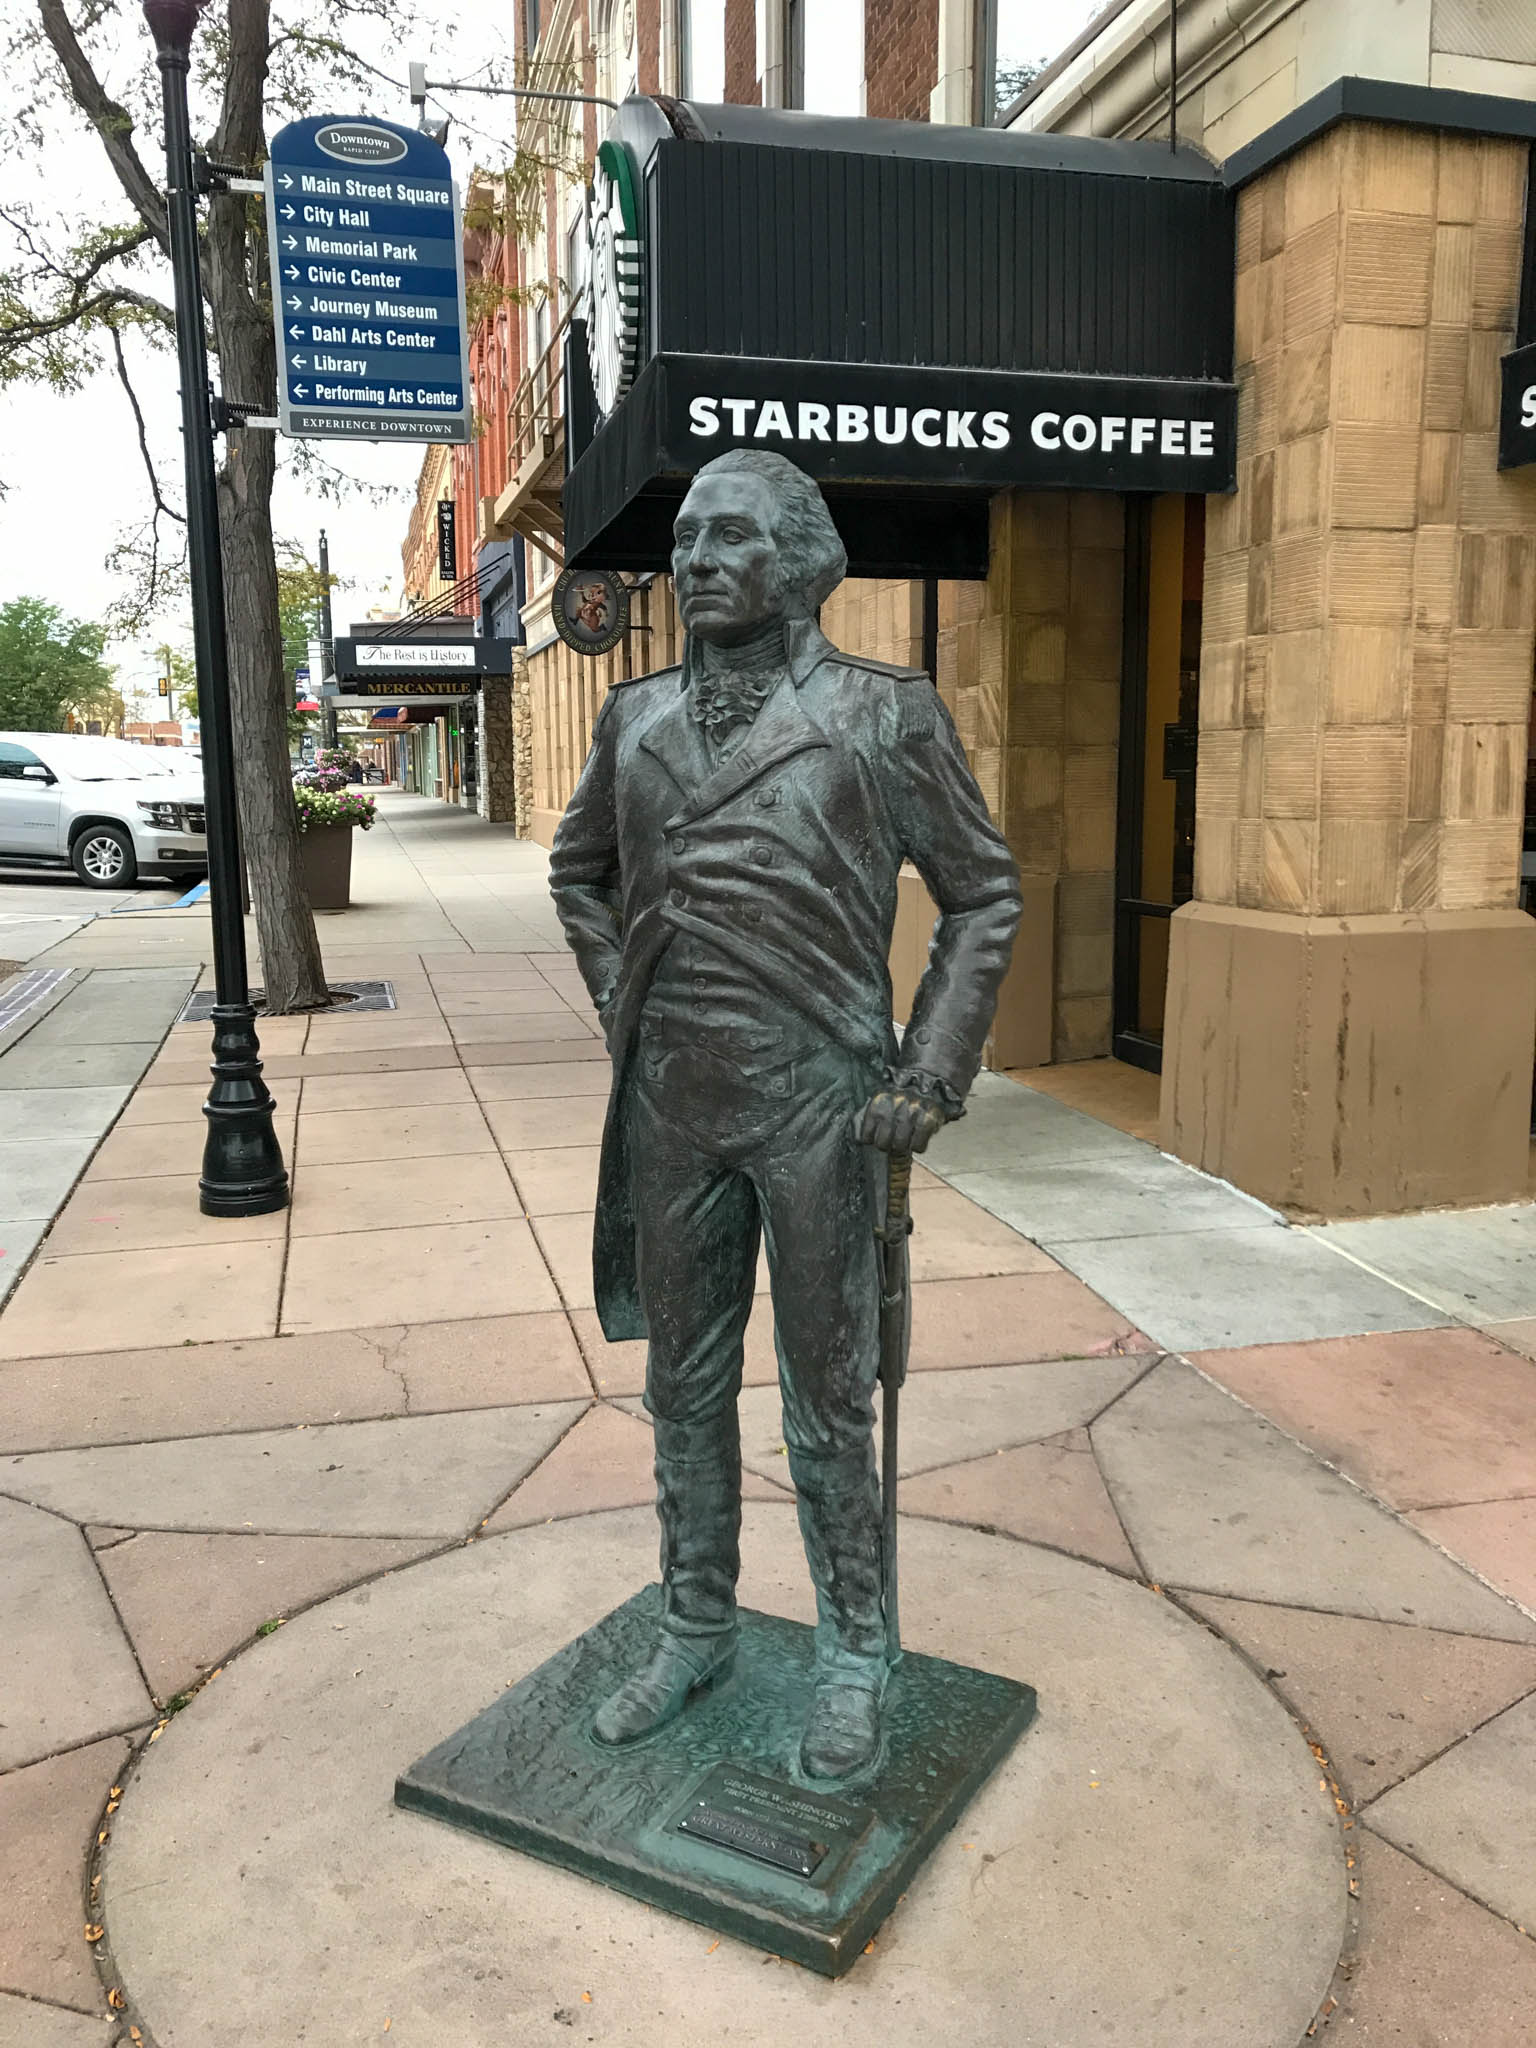 George Washington bij Starbucks